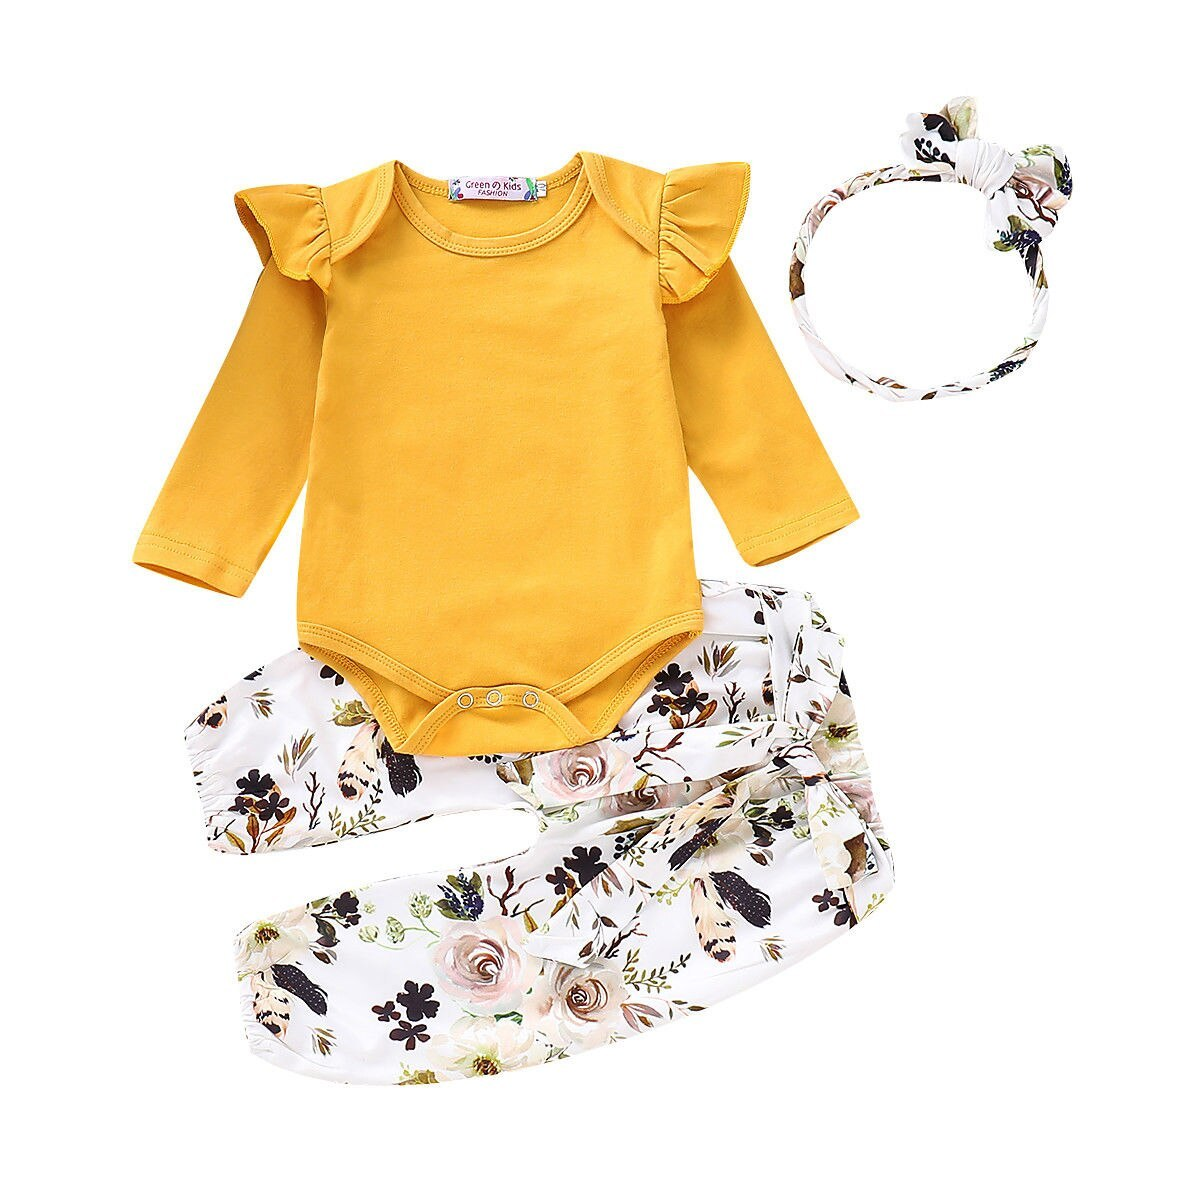 3pcs pudcoco newborn baby girl clothes romper t shirt top pants leggings headband outfits set